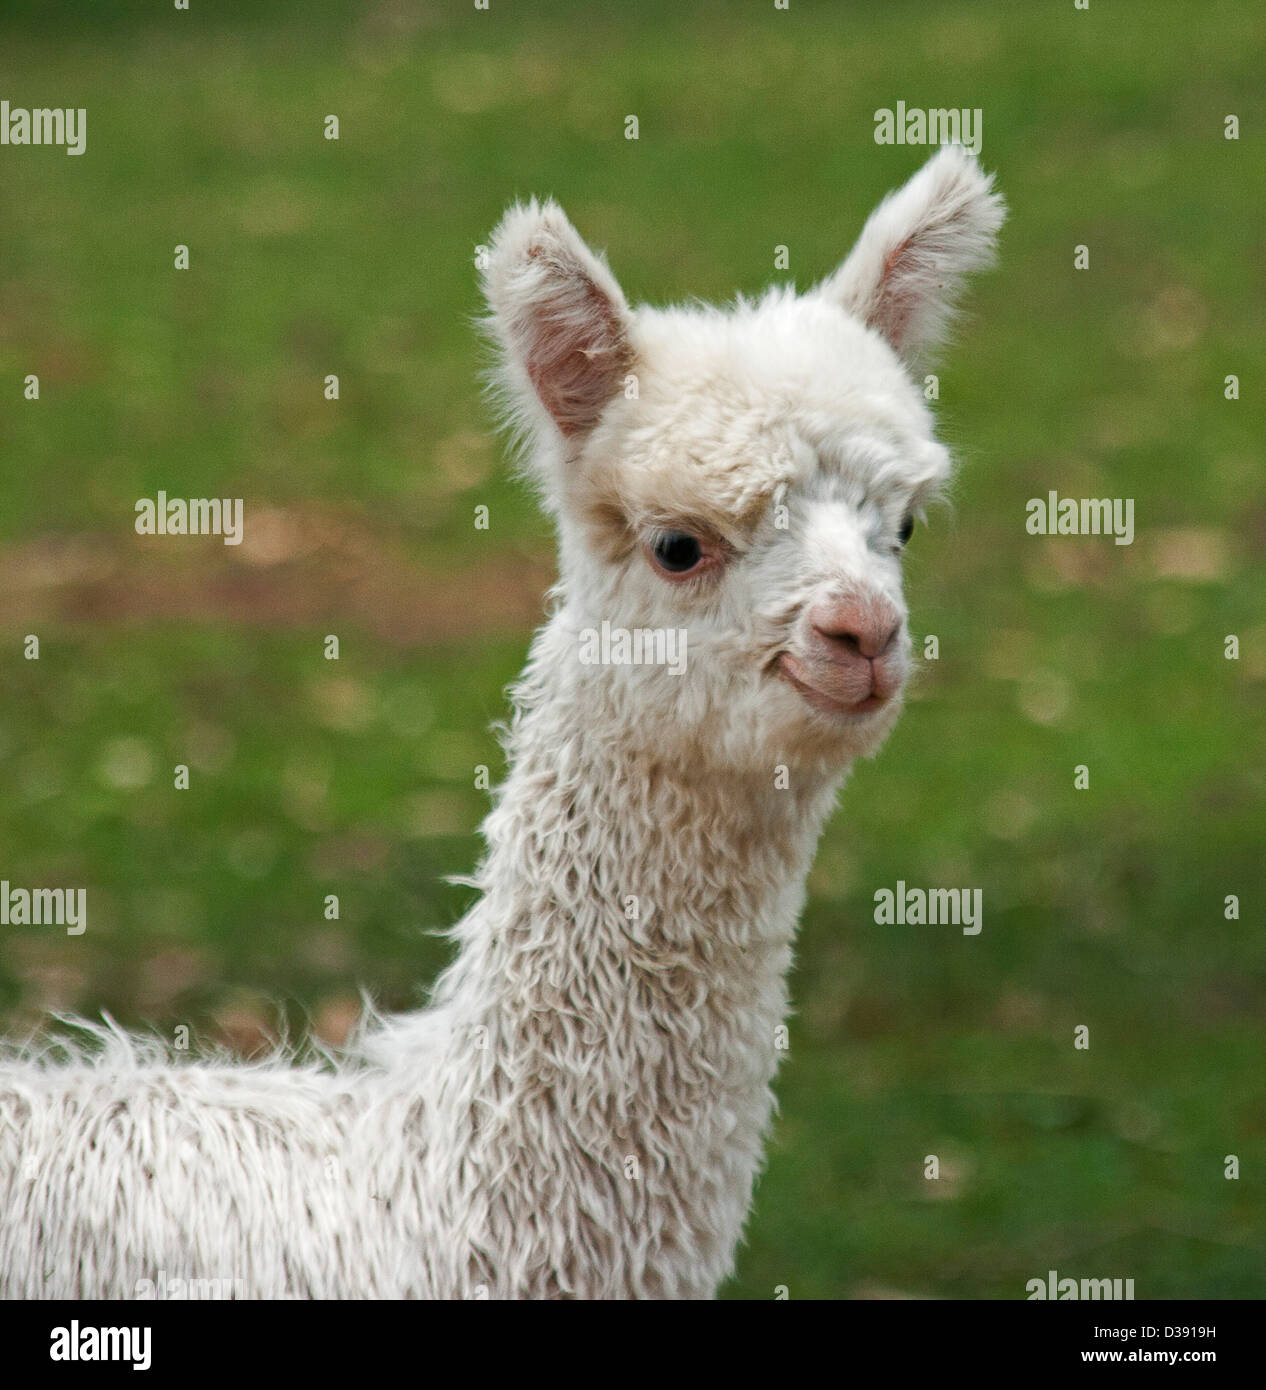 Close up of head and face of young alpaca - cria - against a dark green background - Stock Image